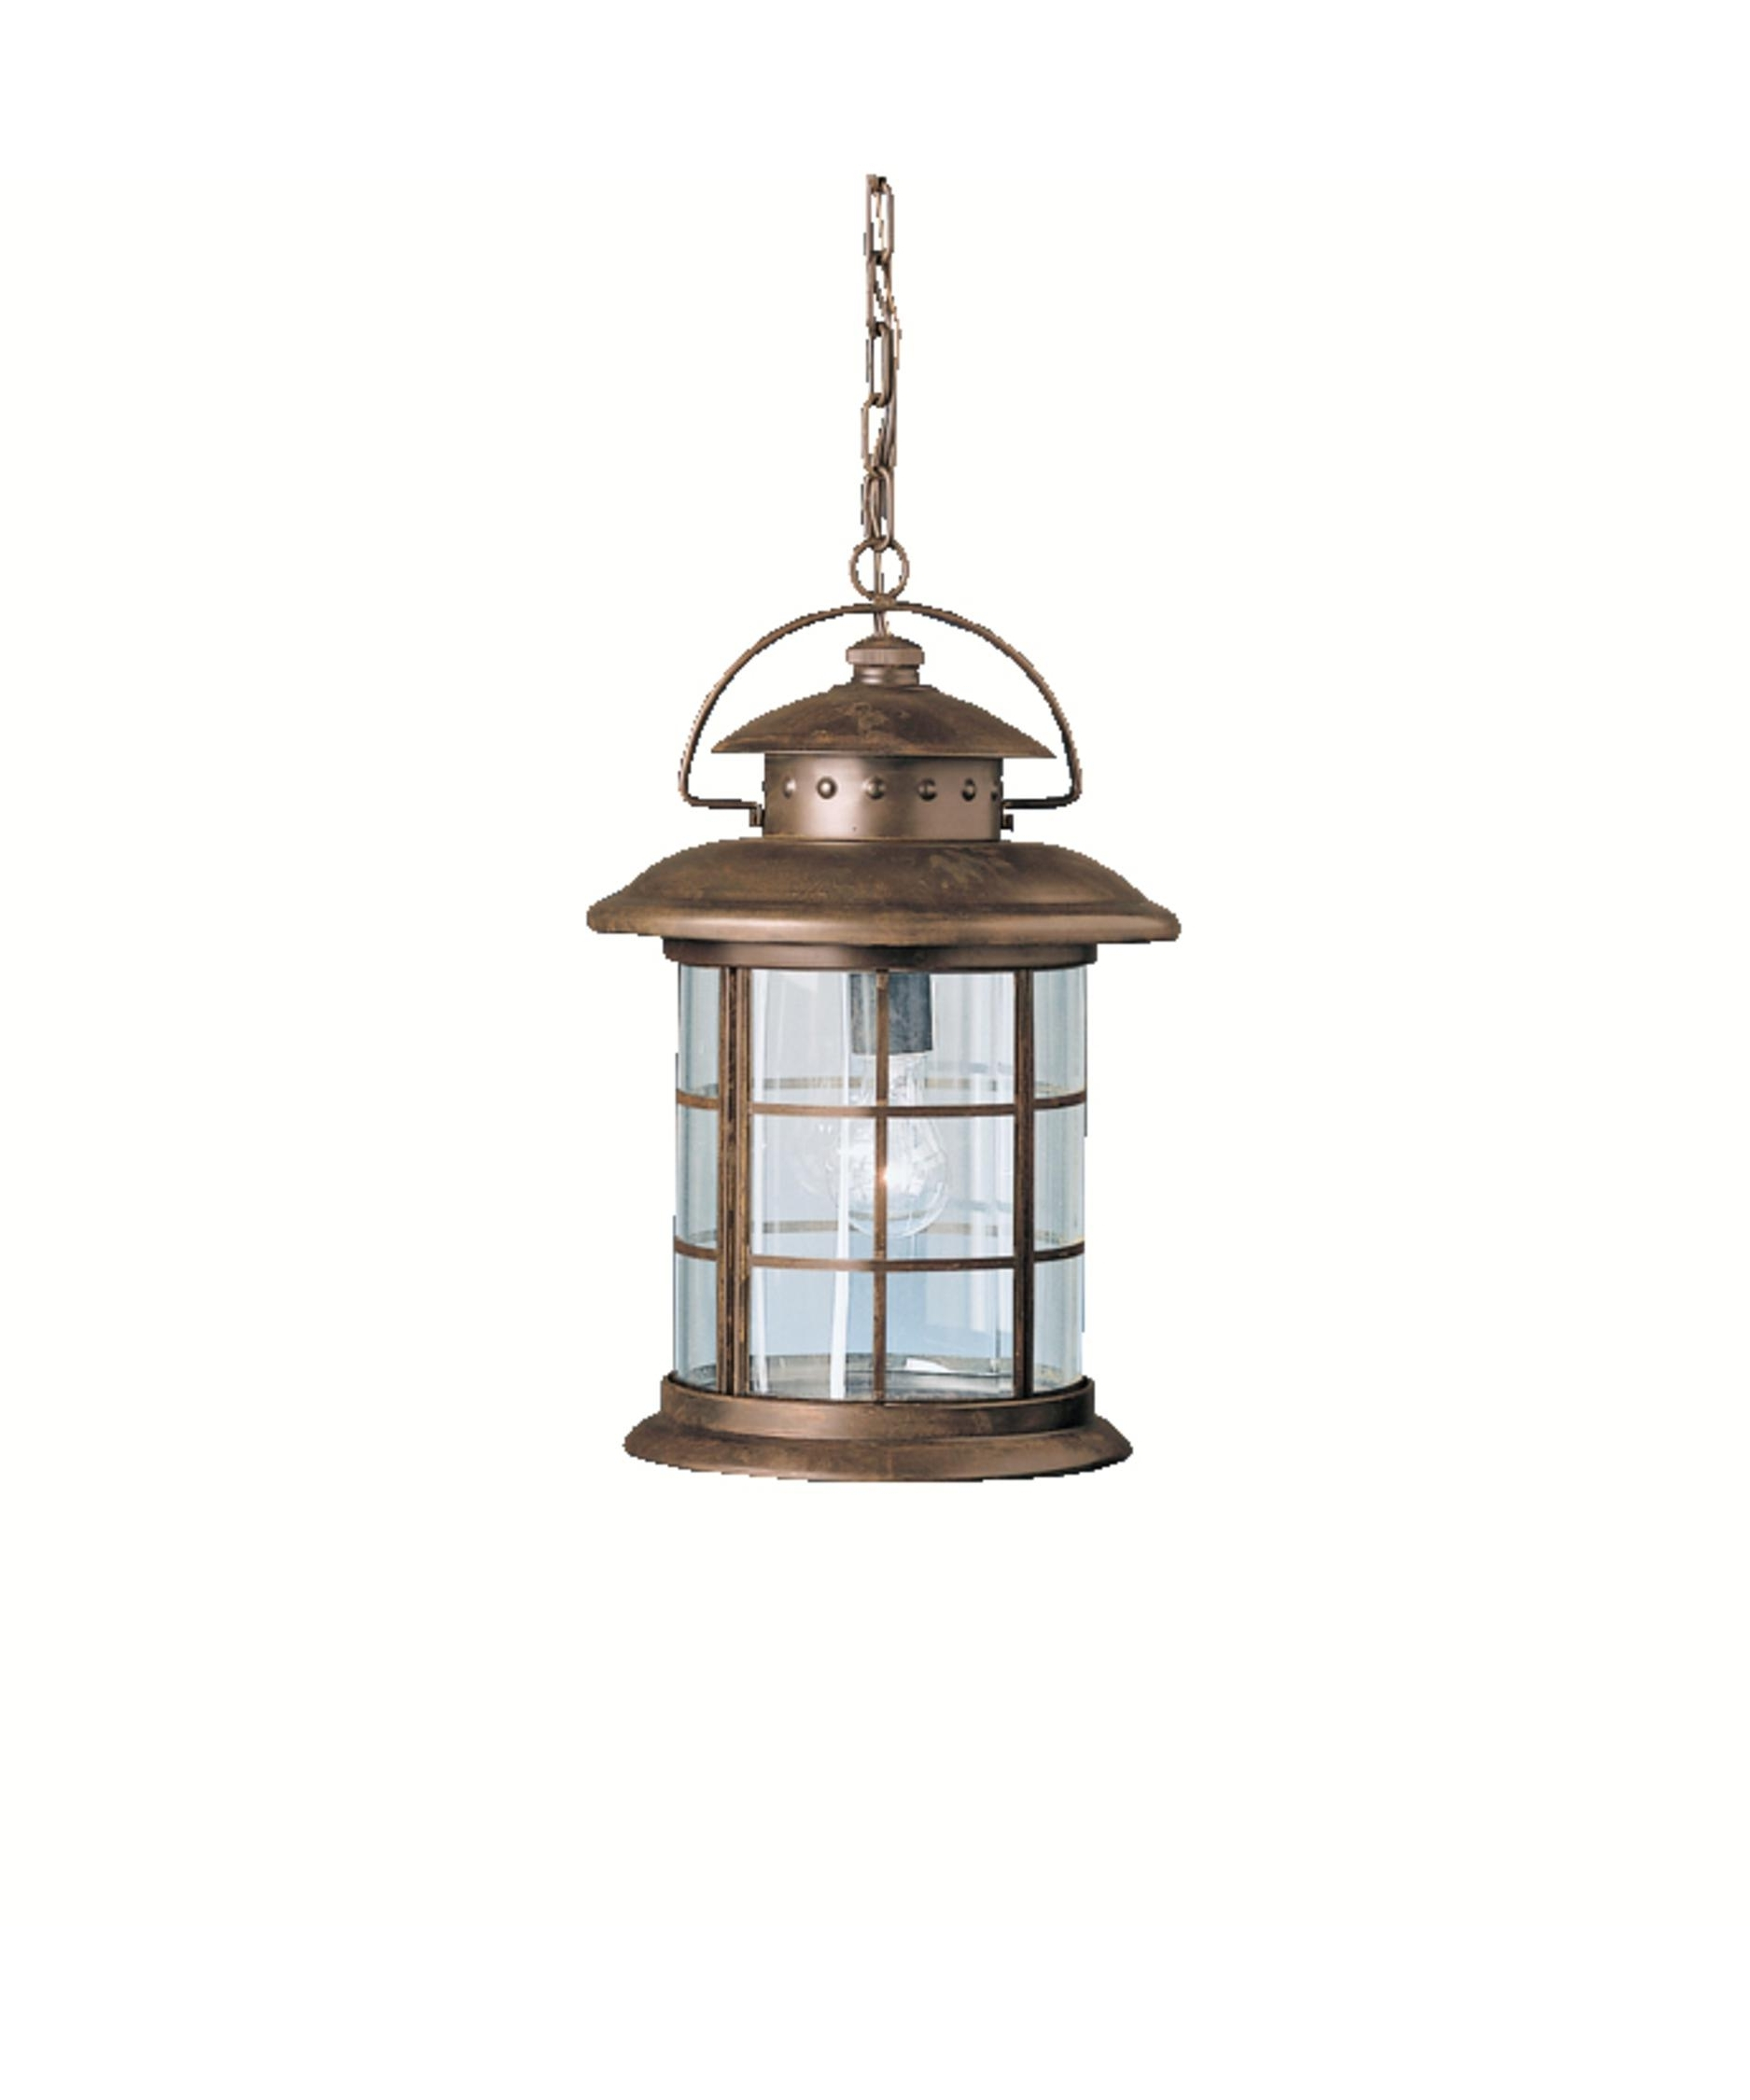 Well Known Kichler 9870 Rustic 11 Inch Wide 1 Light Outdoor Hanging Lantern Pertaining To Outdoor Hanging Garden Lanterns (View 19 of 20)